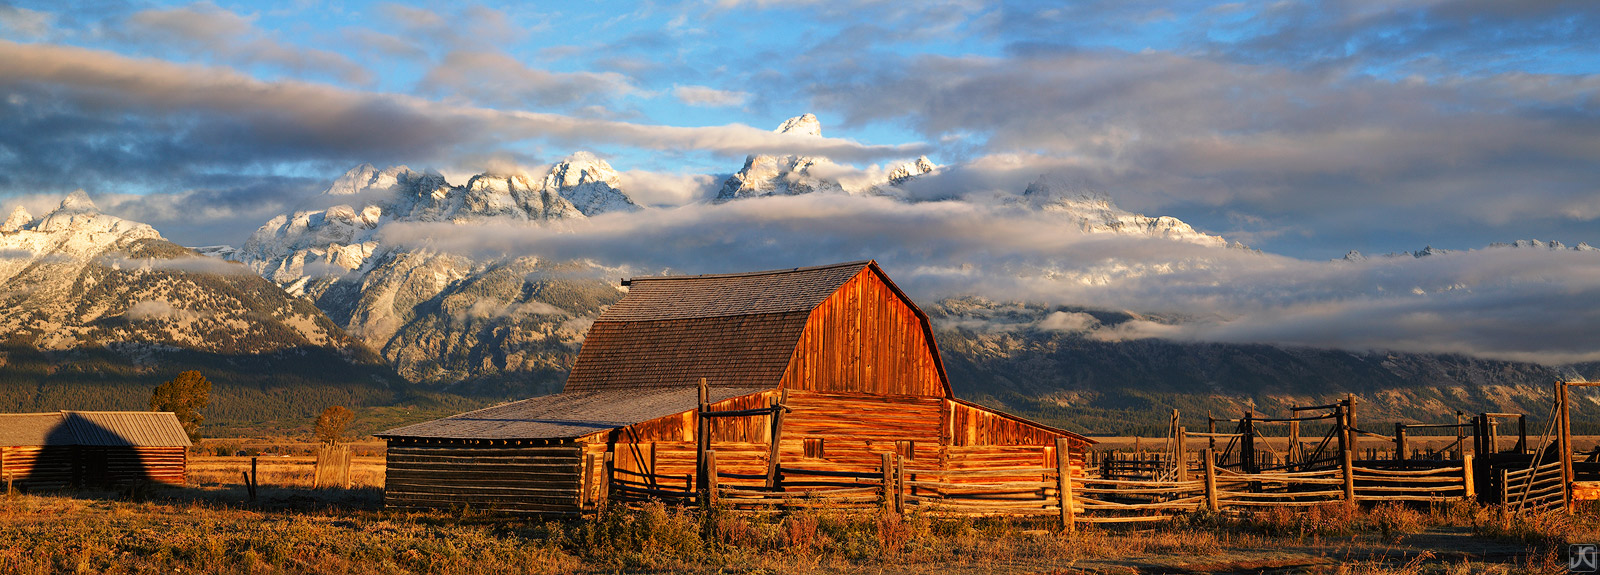 Wyoming, Grand Teton National Park, barn, sunrise, mountains, photo